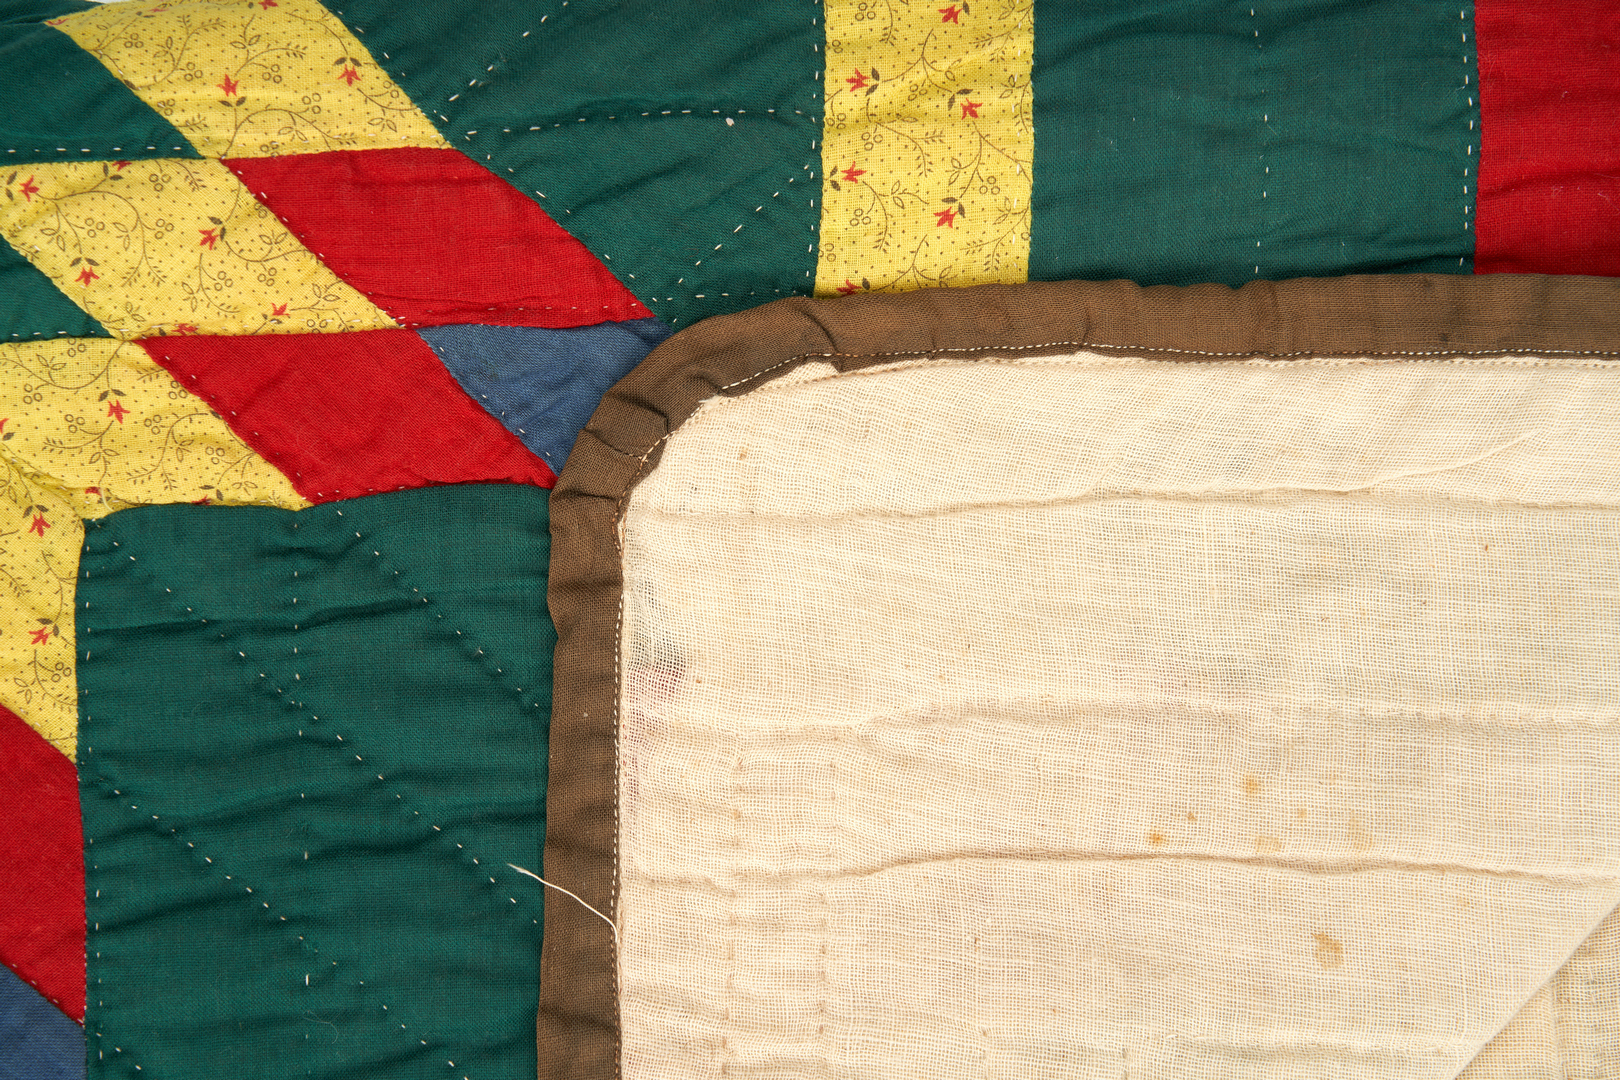 Lot 414: American Pieced Cotton Quilt, Star of Bethlehem